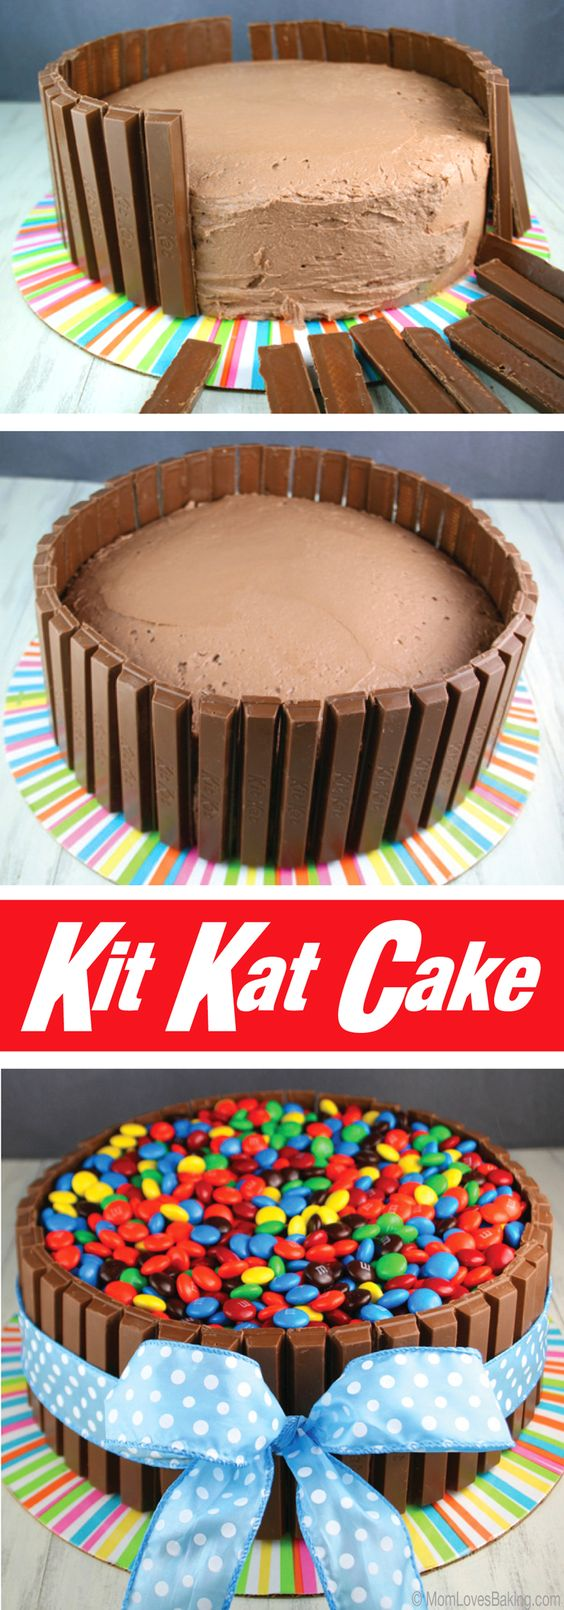 chocolate frosted chocolate layer cake, surrounded by over 40 Kit Kat ...